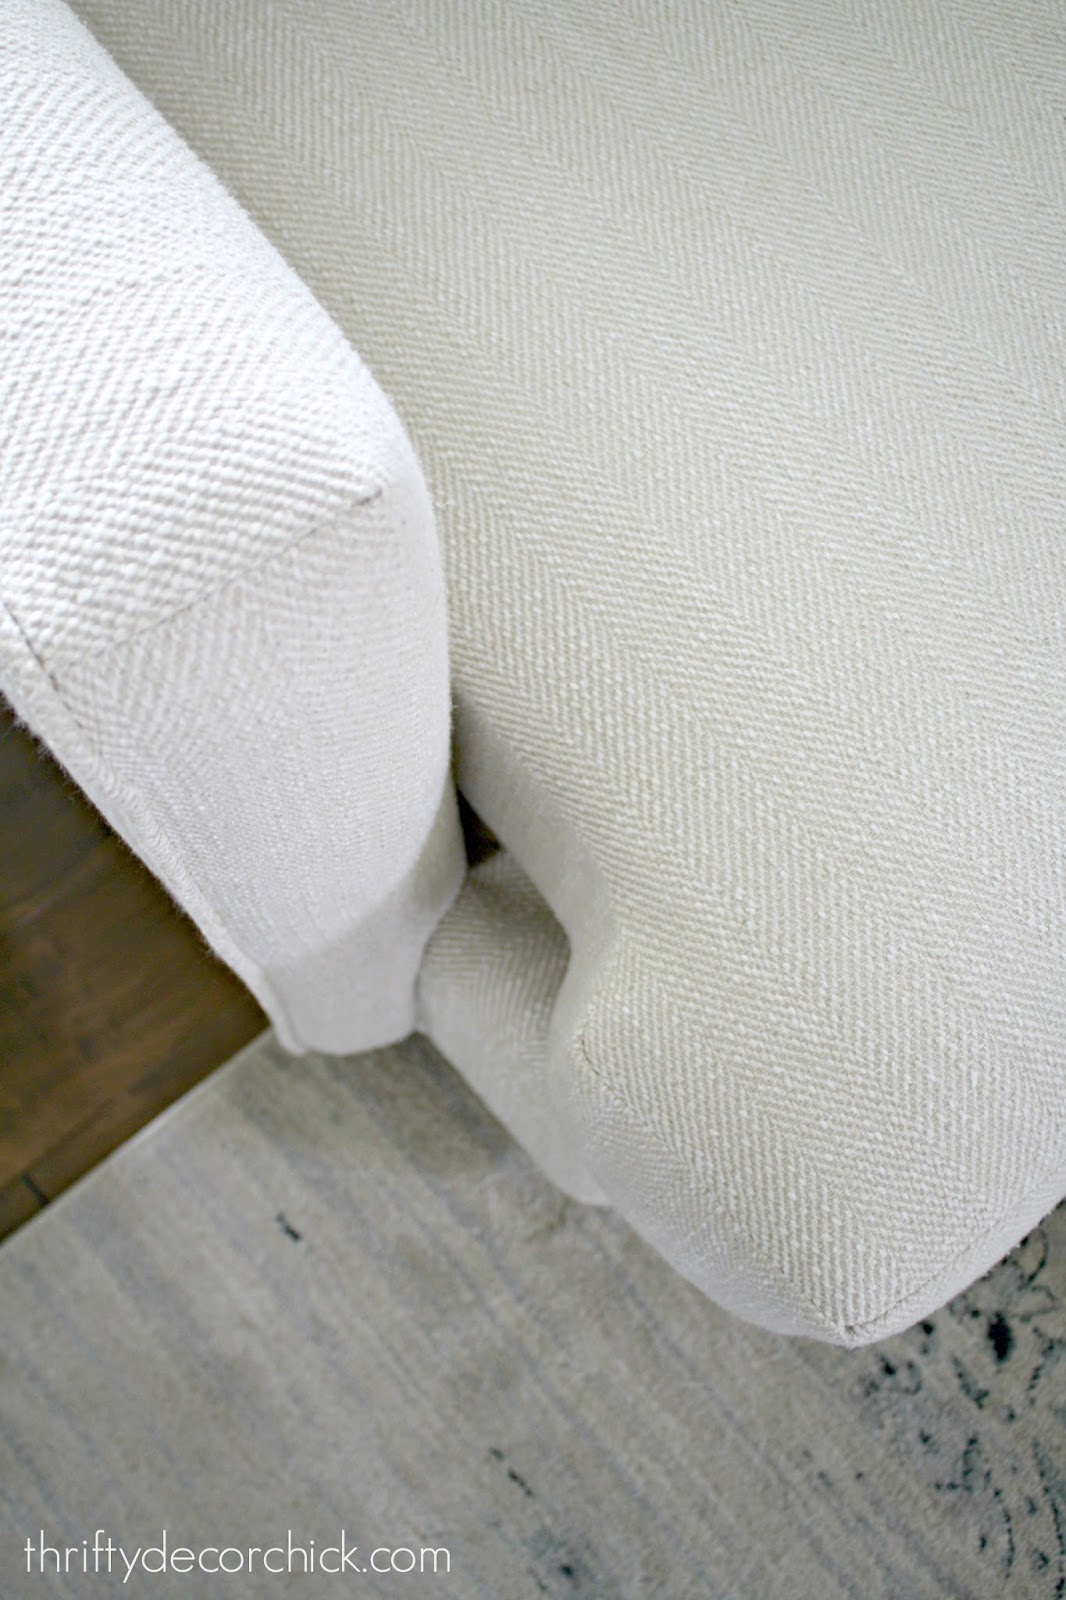 Easy fix for sliding couch cushions